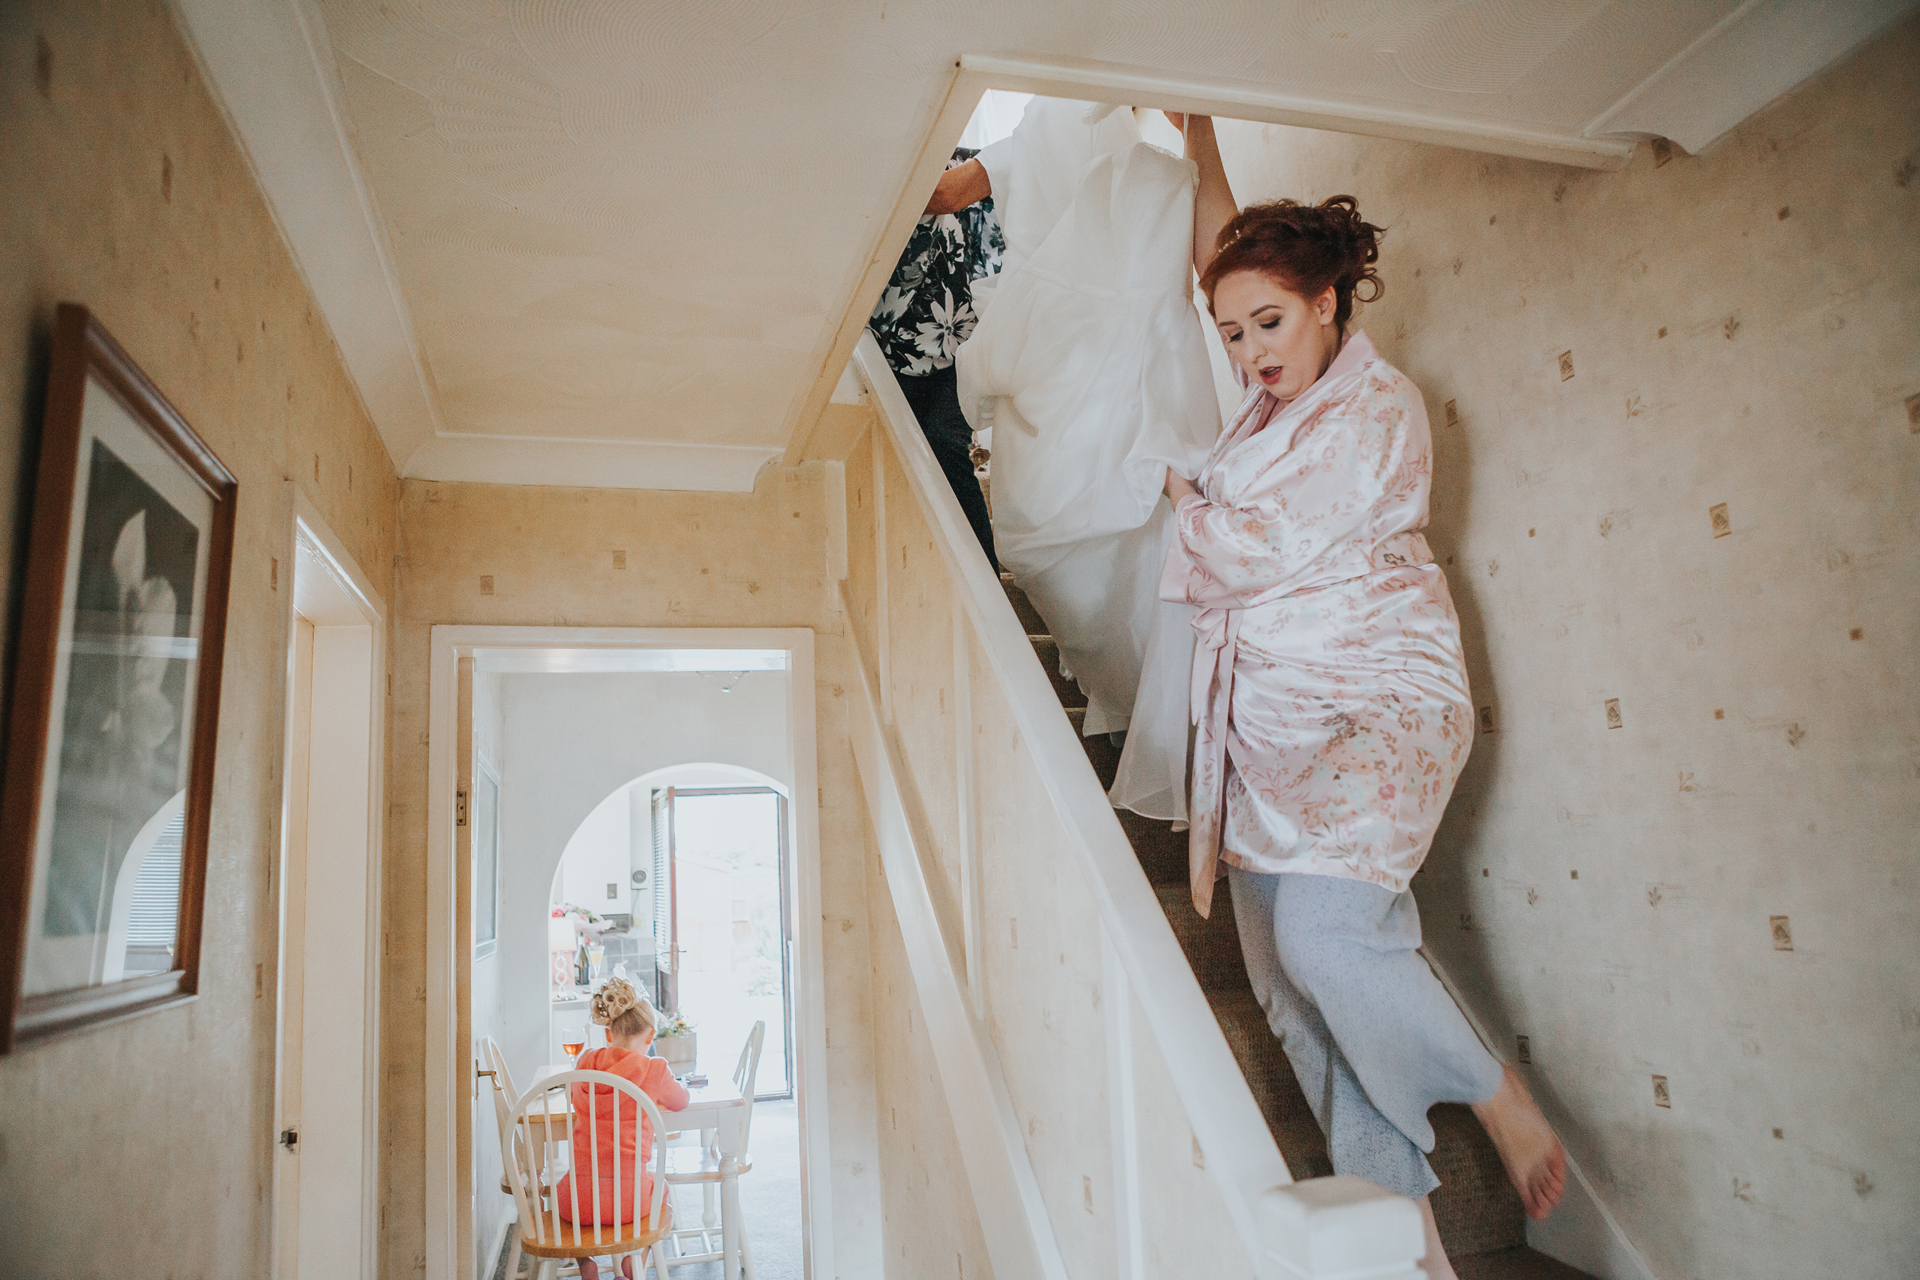 Bride bringing her dress down the stairs, bridesmaid waits in kitchen.